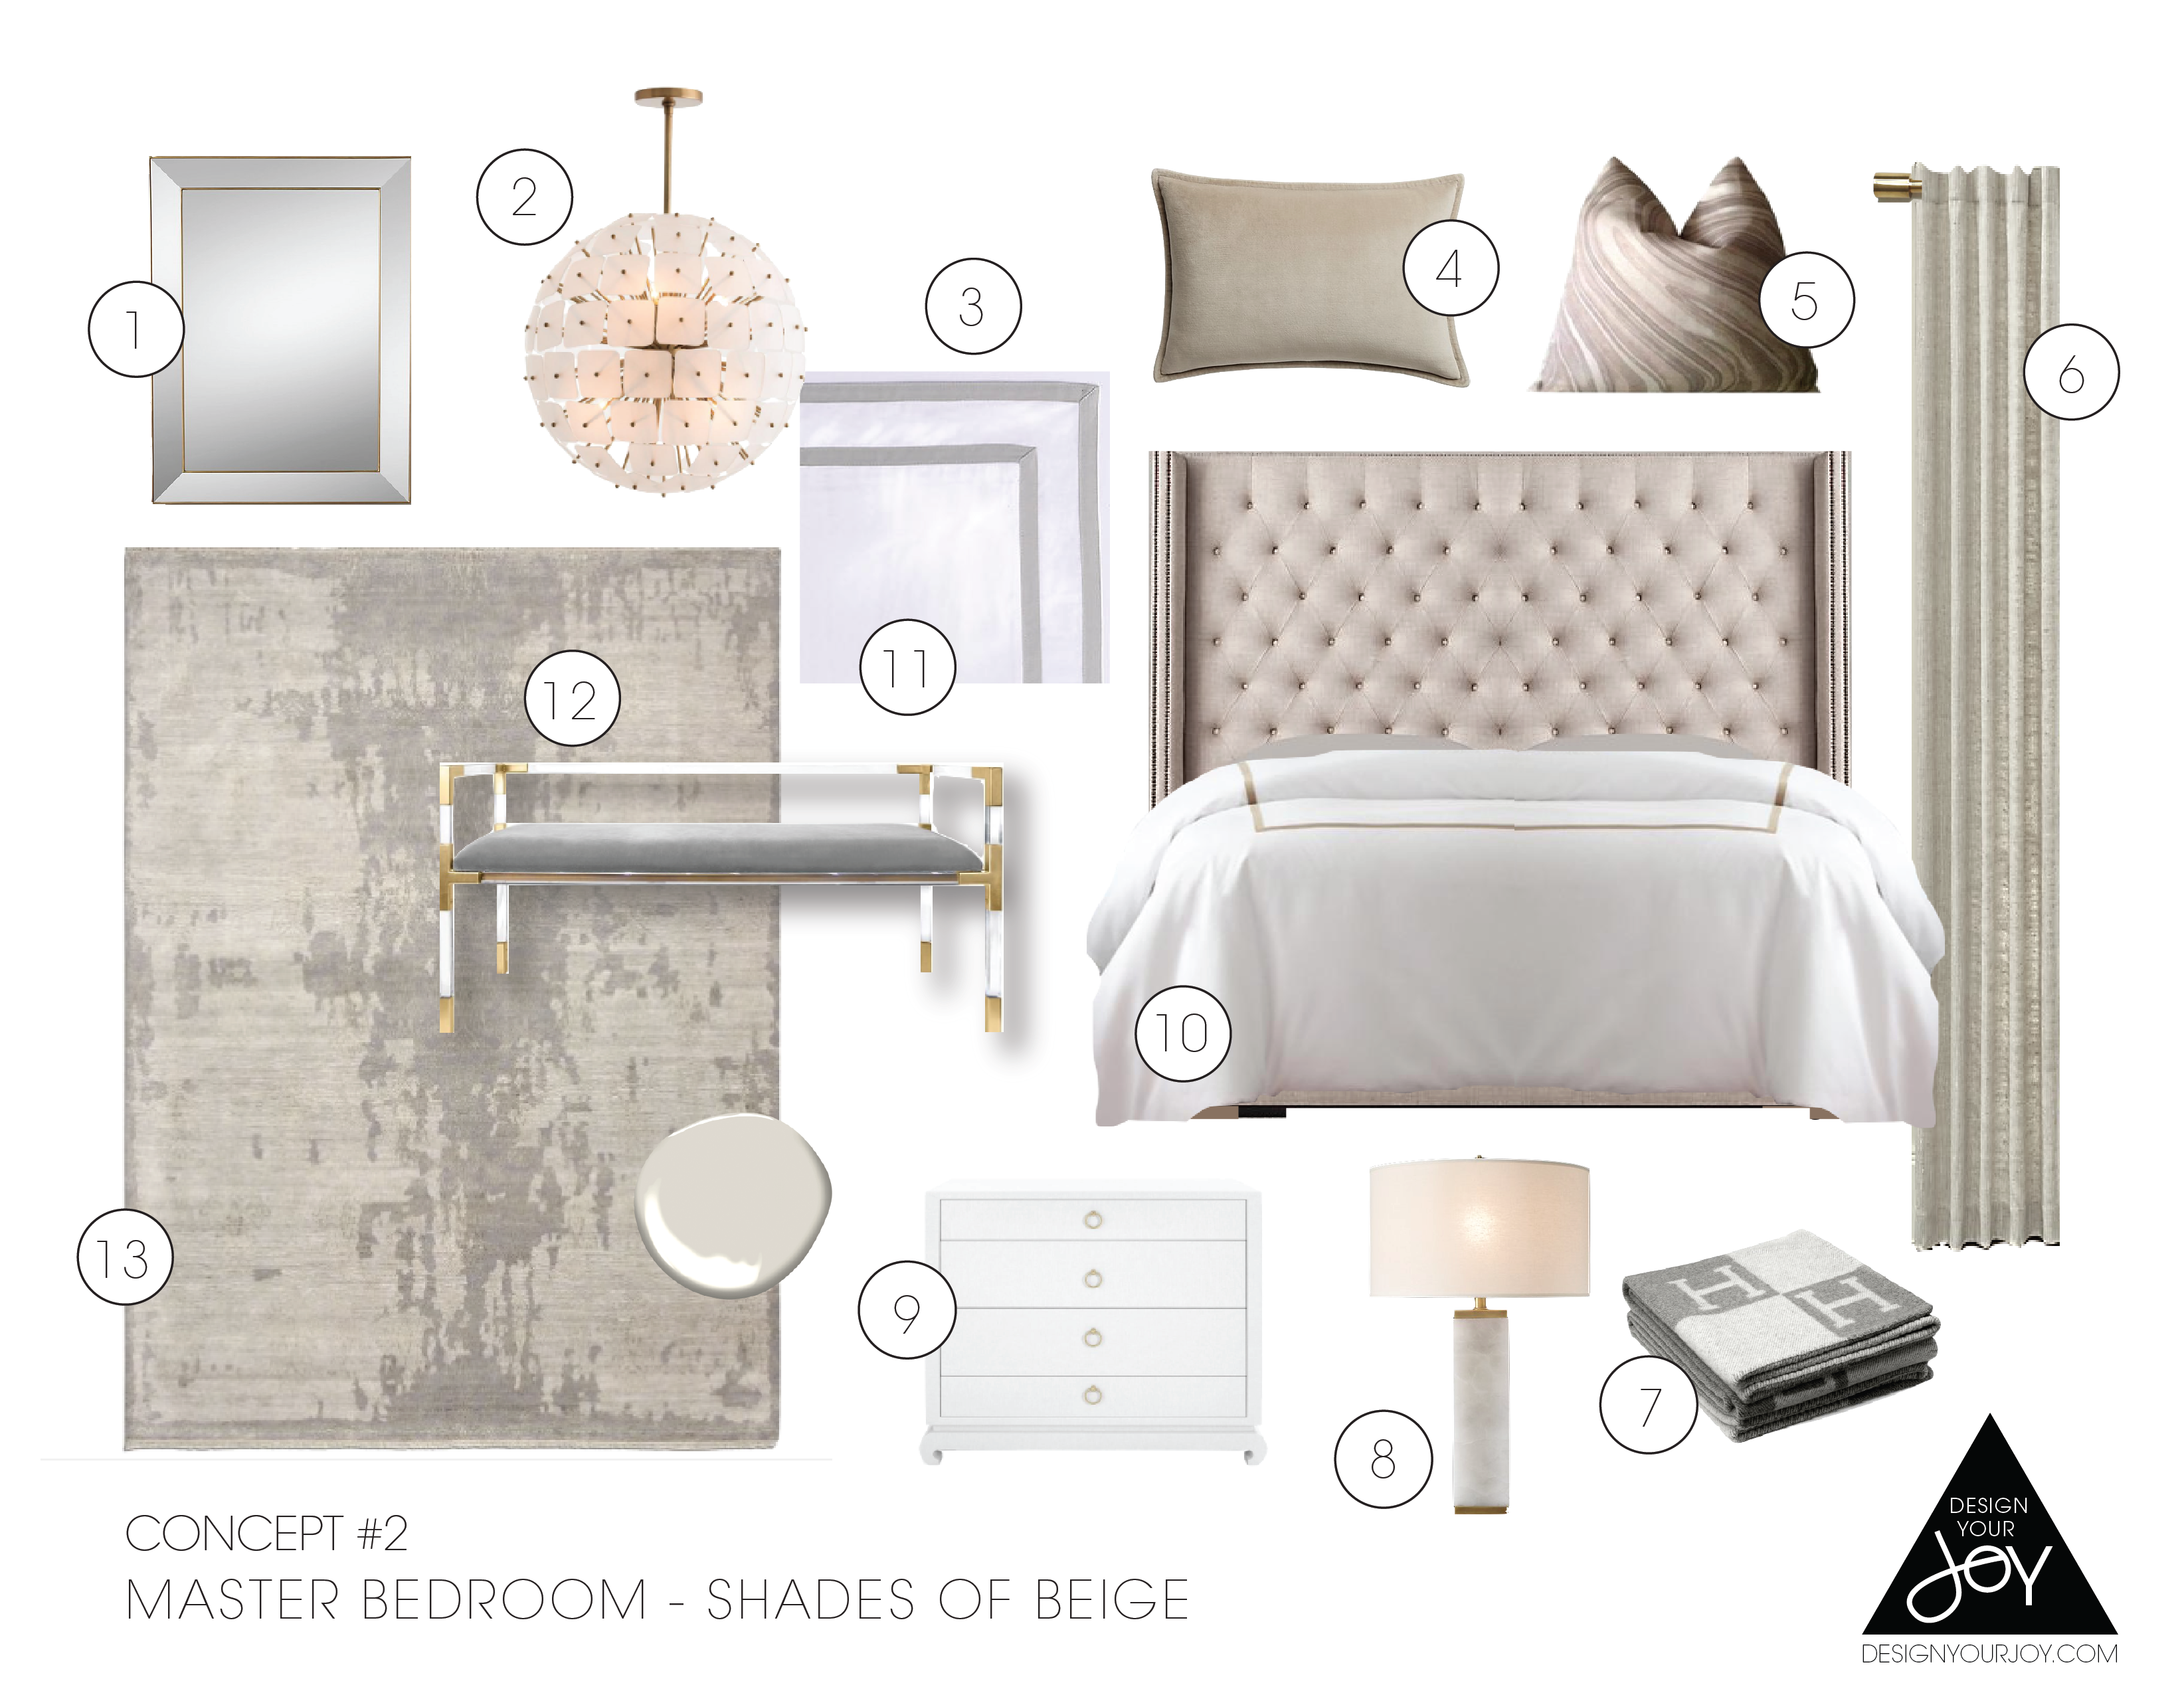 concept-2-styleboard